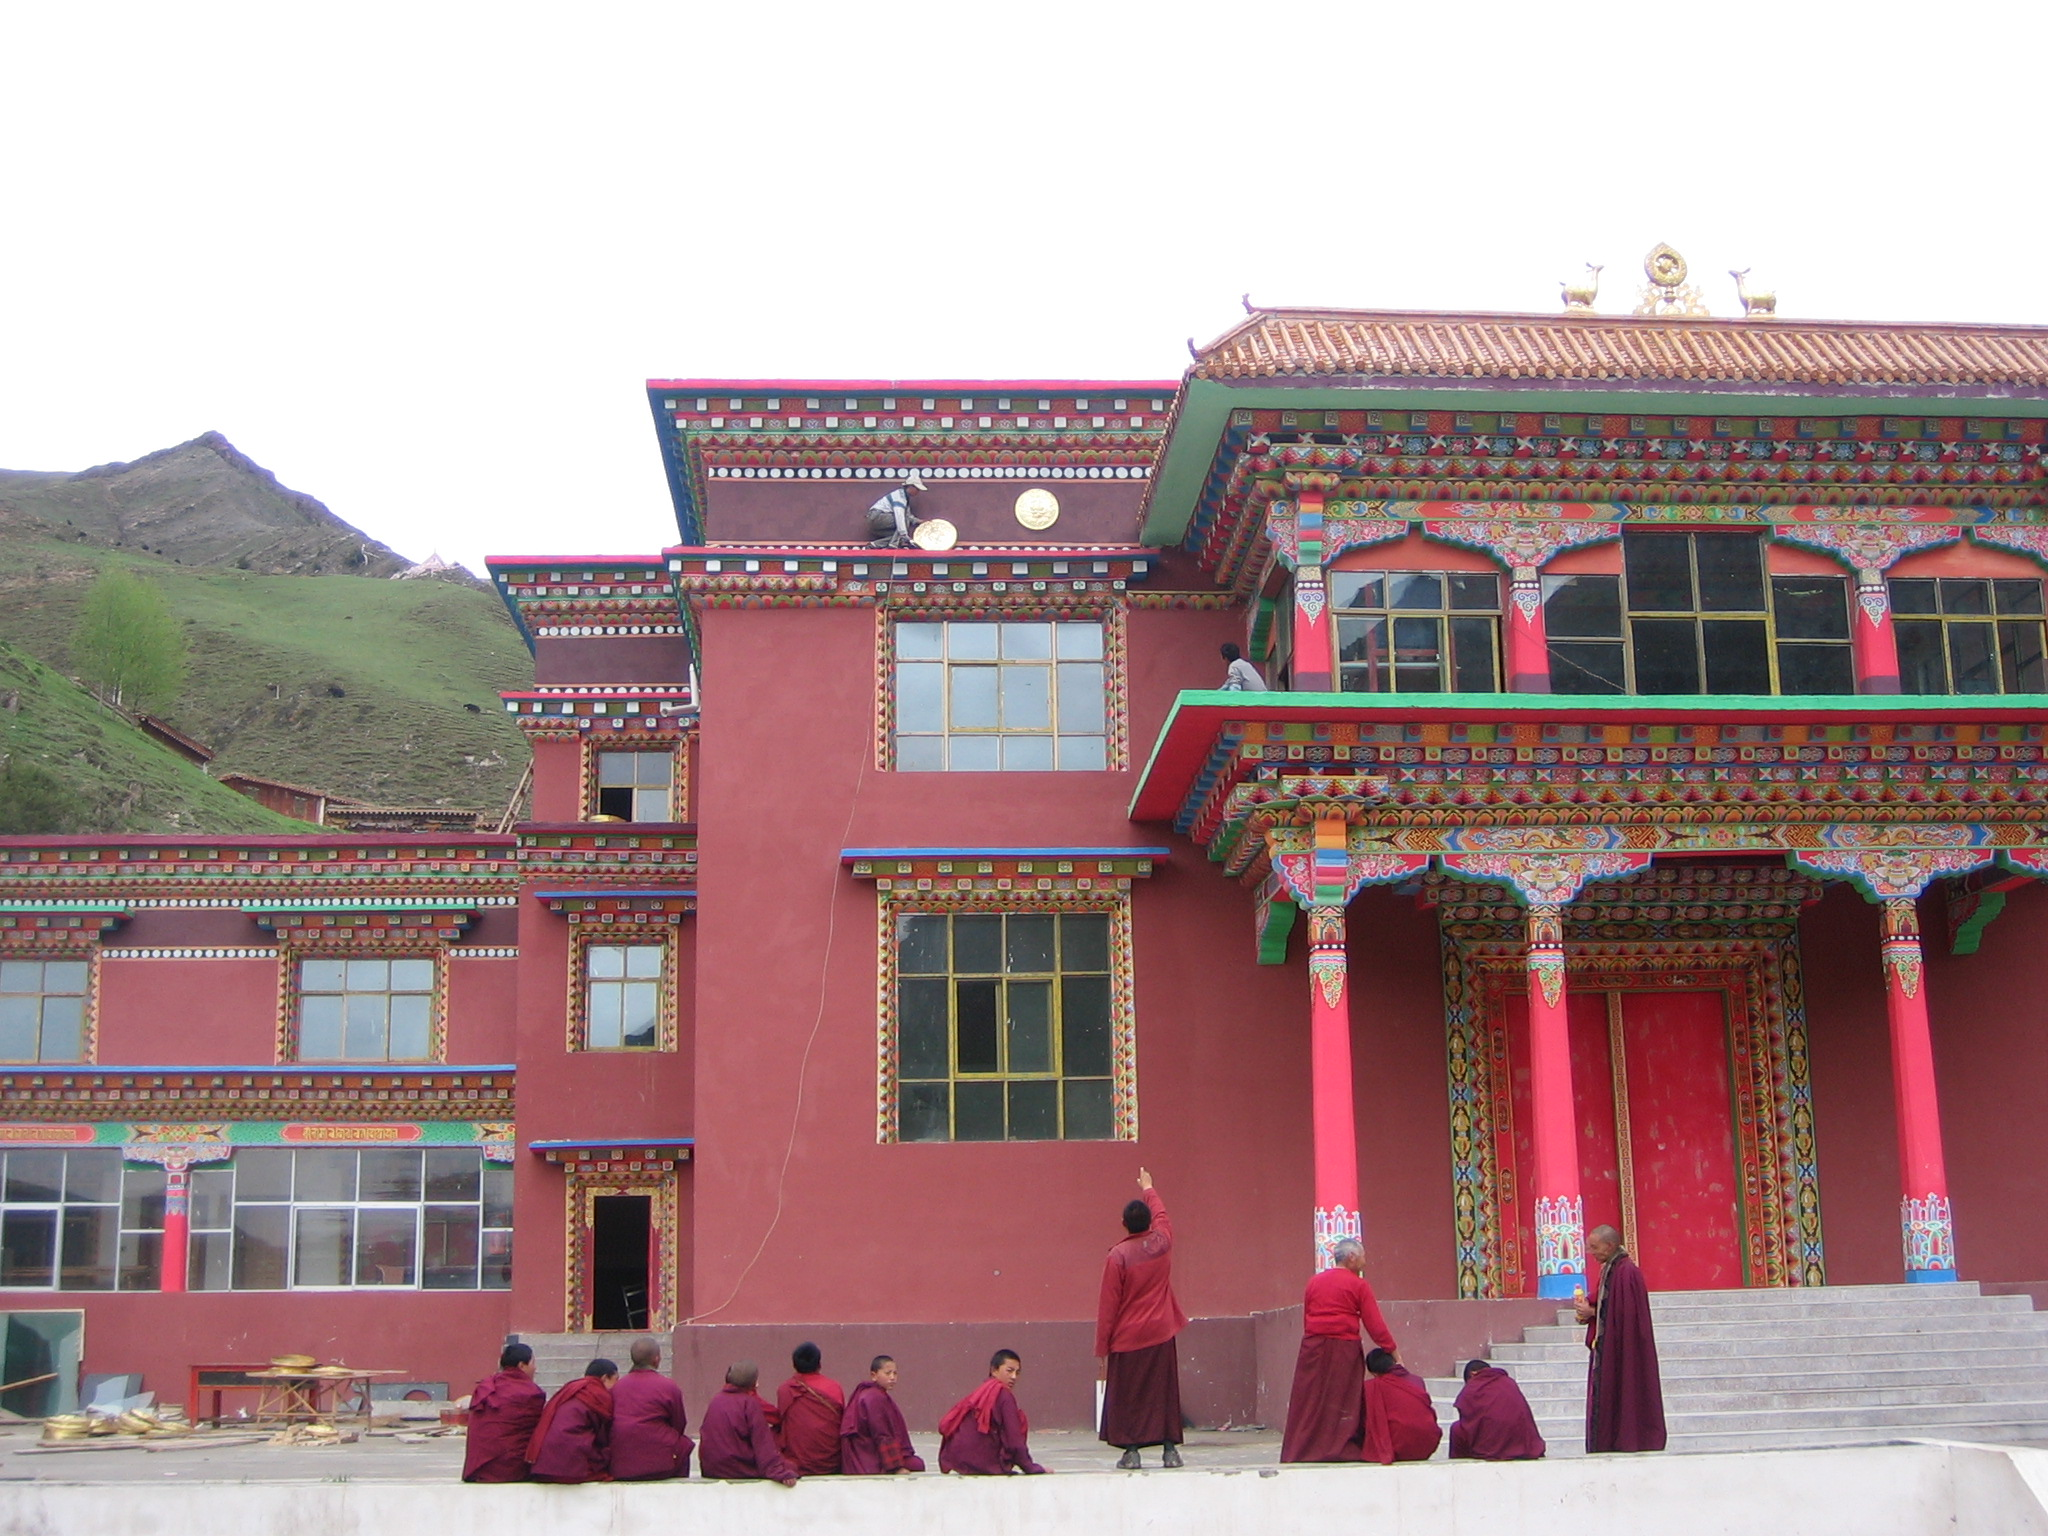 From below, Khenpo points to the right spot to place the medallion.